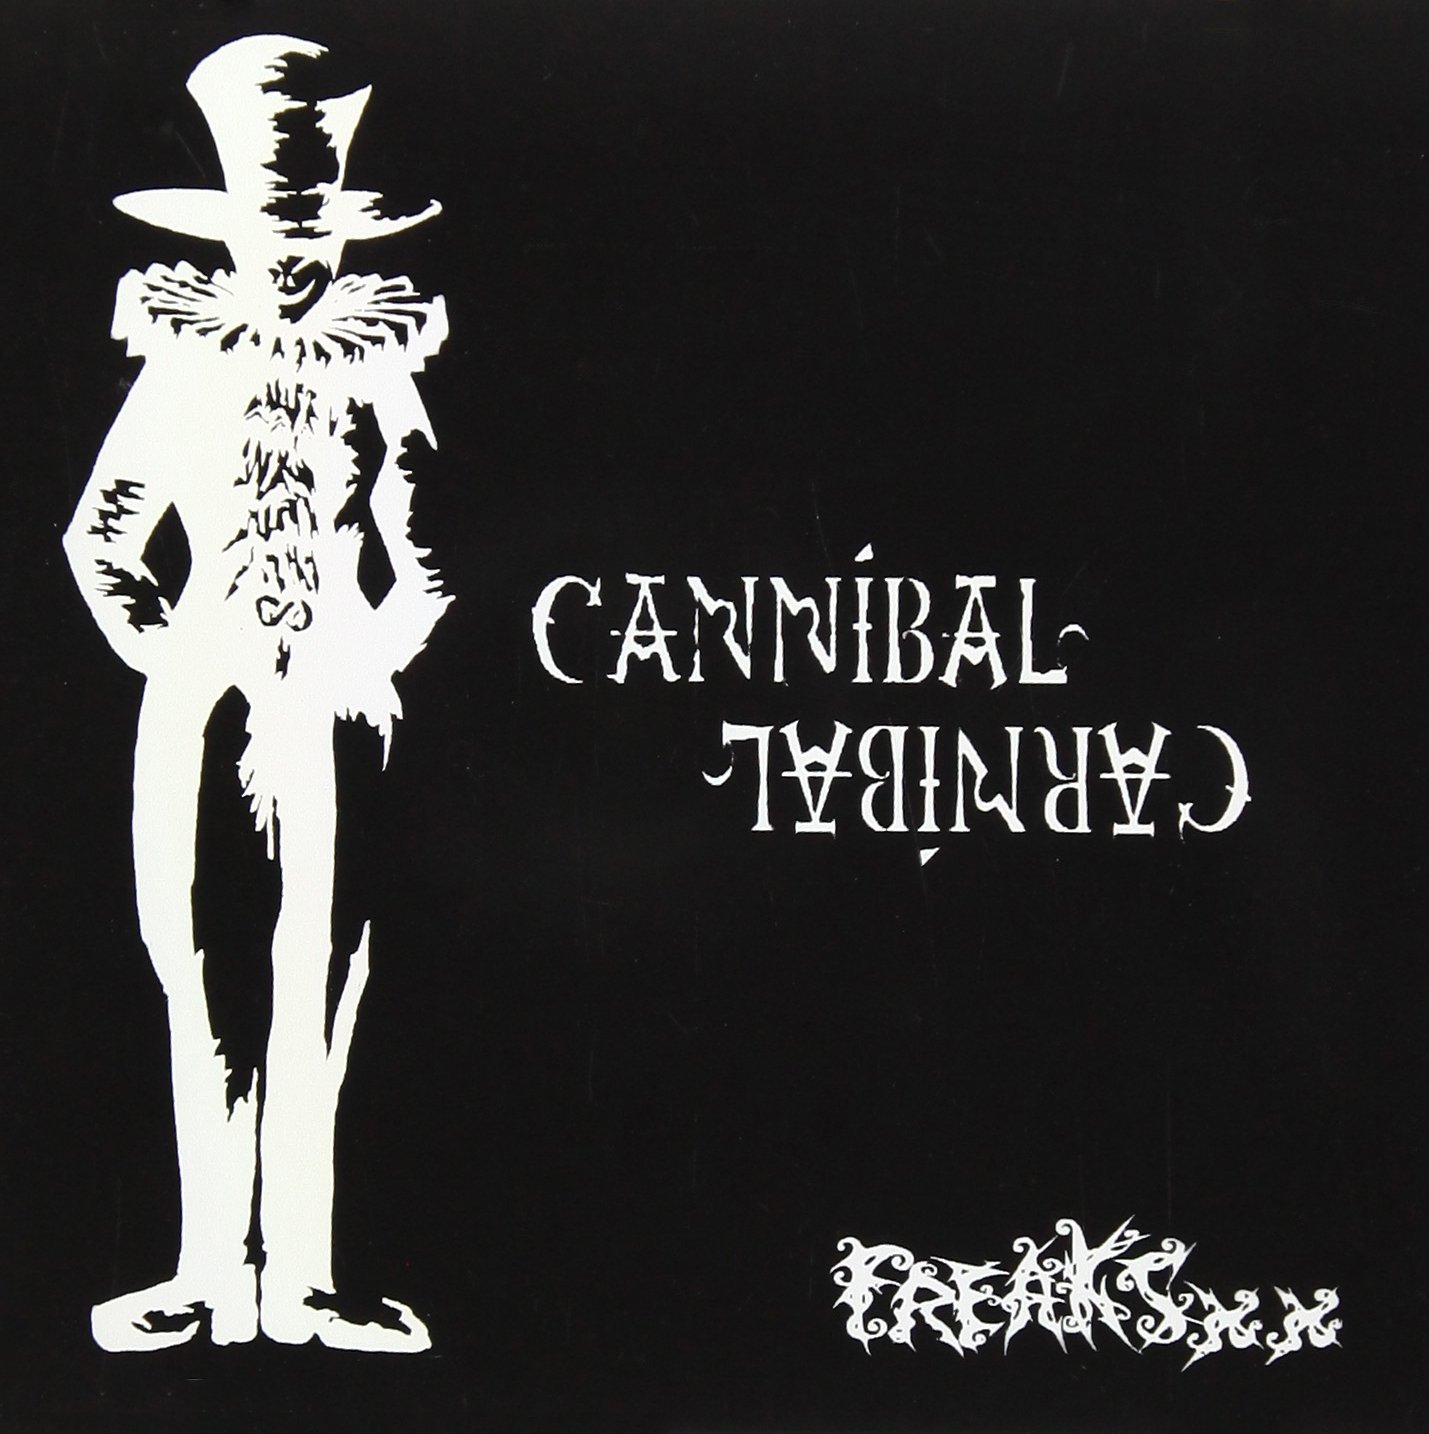 canninbal carnibal amazon com music